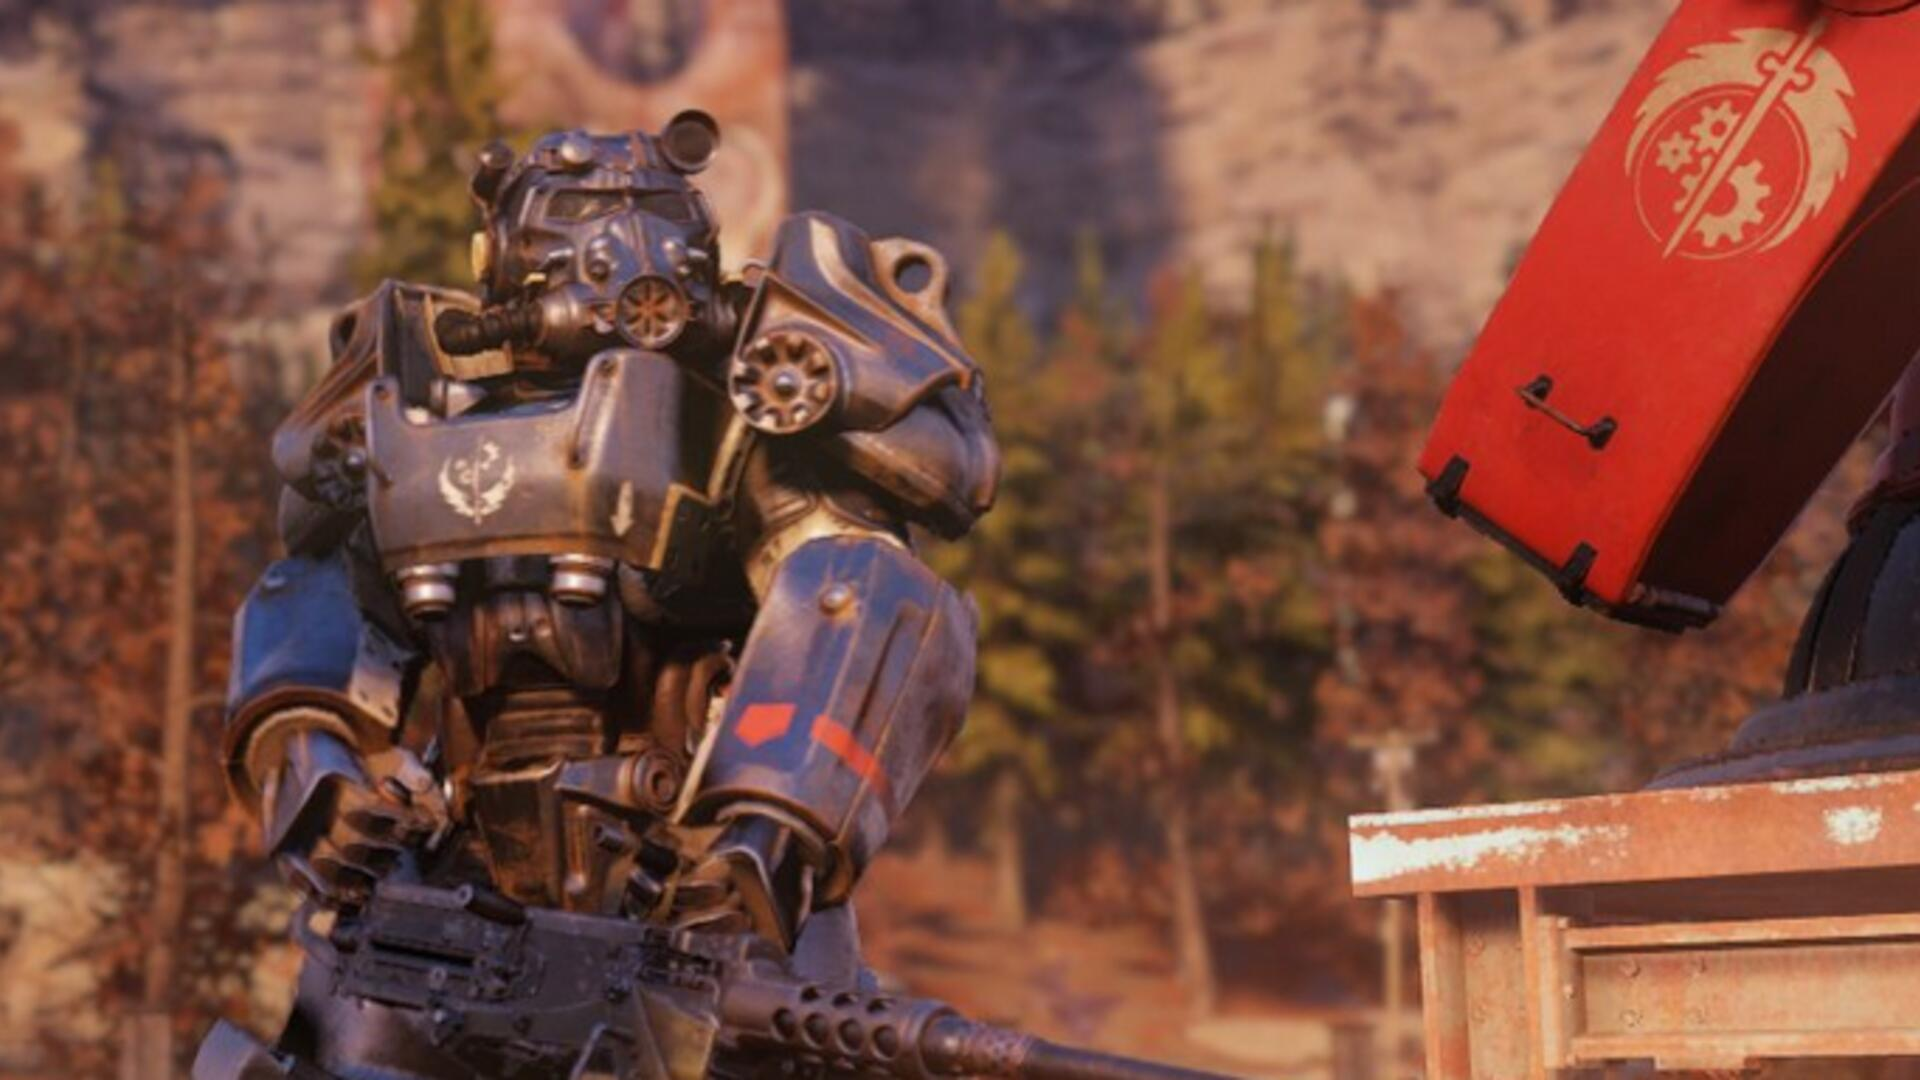 Bethesda Asks Players to Understand There Might Be Bugs in Fallout 76